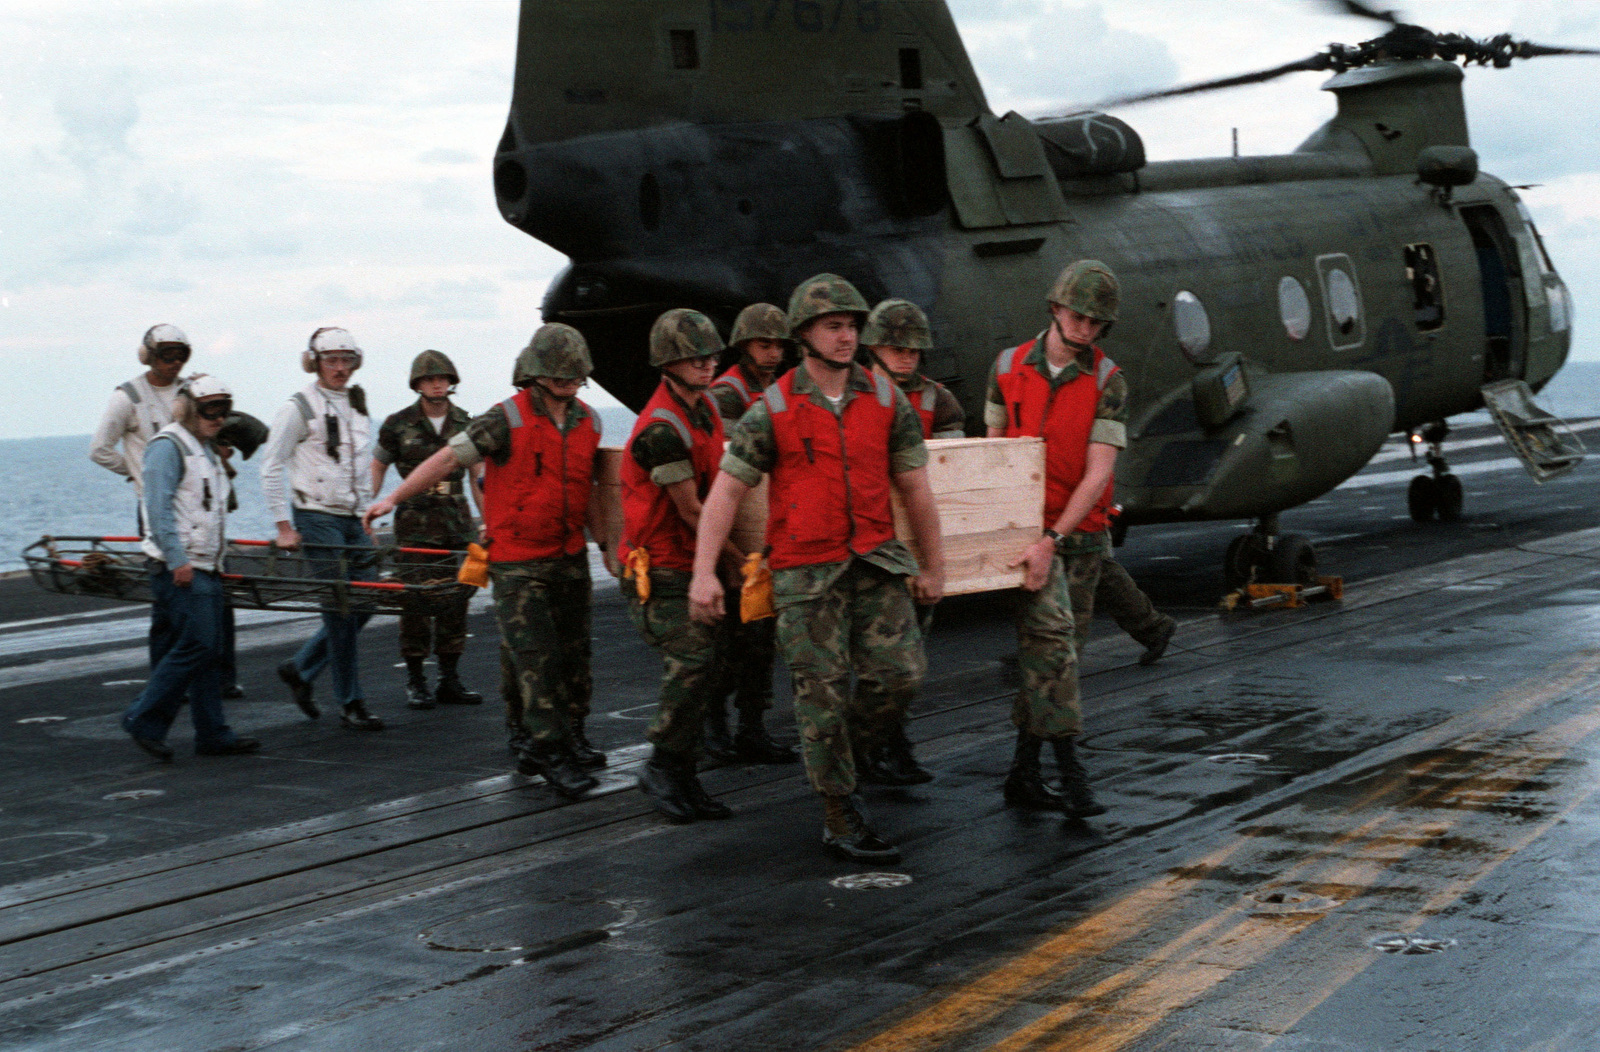 Marines carry a box containing the body of Lieutenant (LT) Mark Adam Lange from a CH-46 Sea Knight helicopter after its arrival aboard the aircraft carrier USS JOHN F. KENNEDY (CV 67). LT Lange was killed when his A-6 Intruder aircraft was shot down in a bombing raid over Lebanon